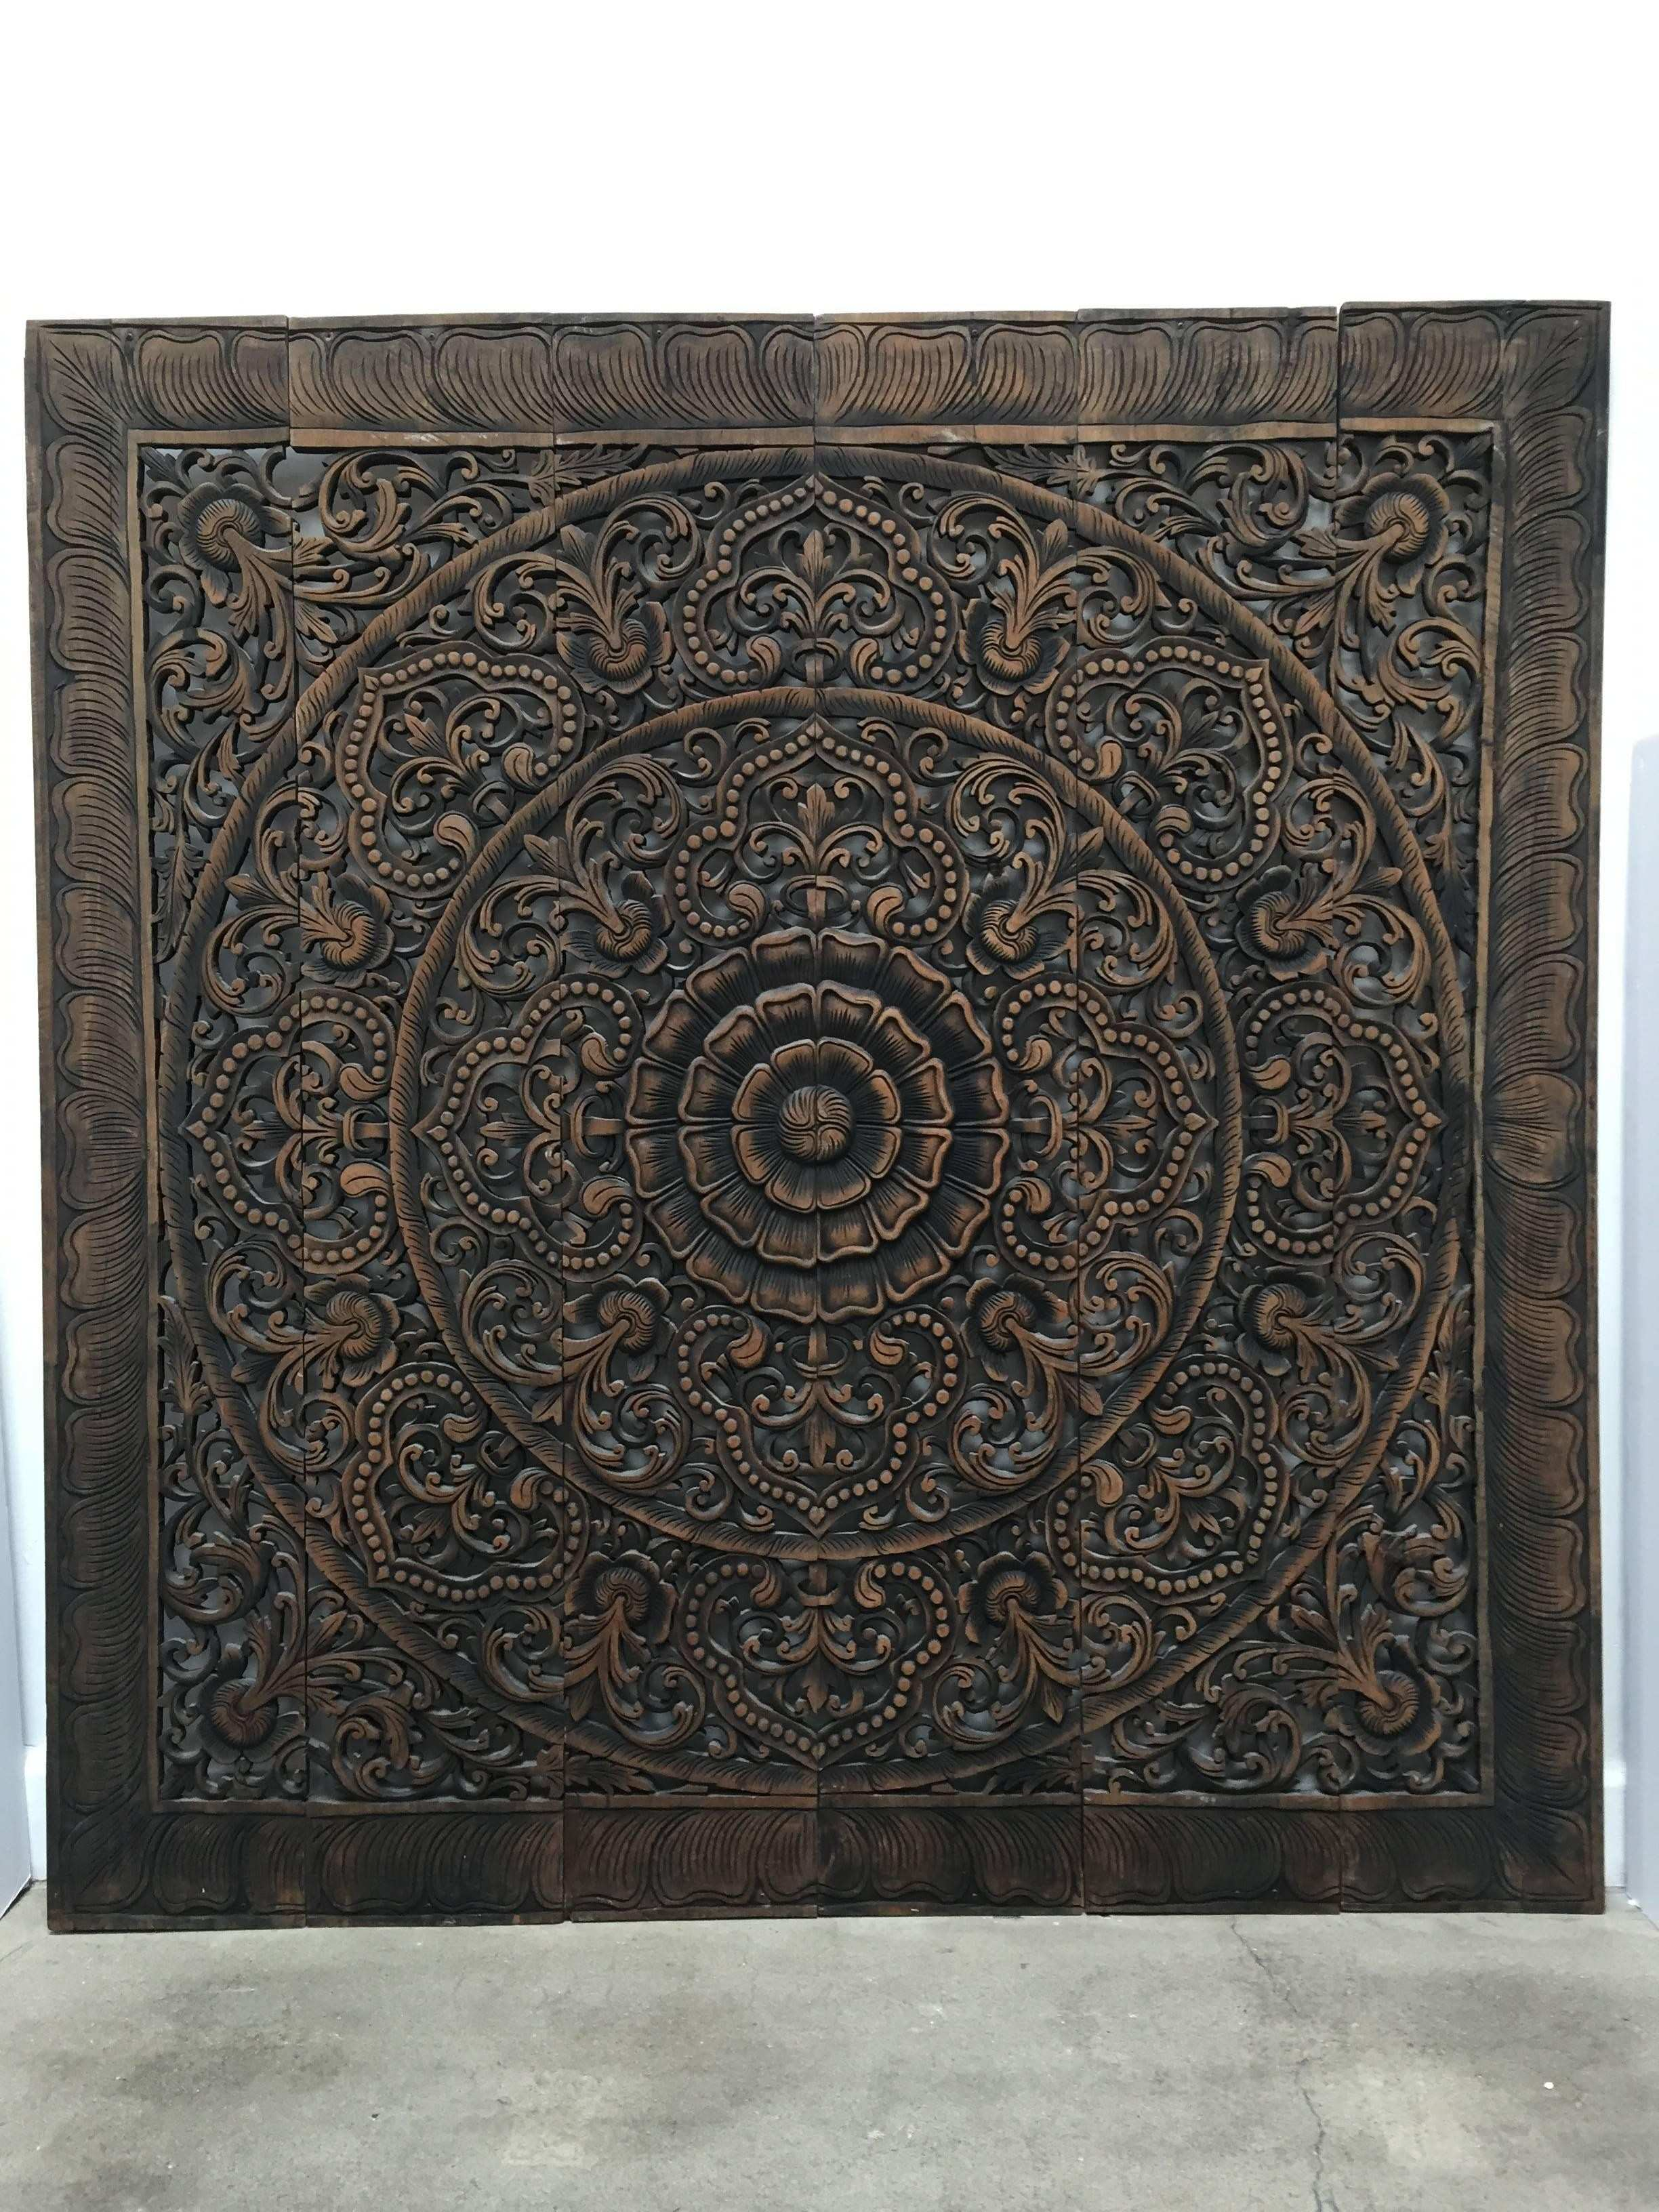 Hand Carved Balinese Oversized Decorative Teak Wall or Ceiling Art